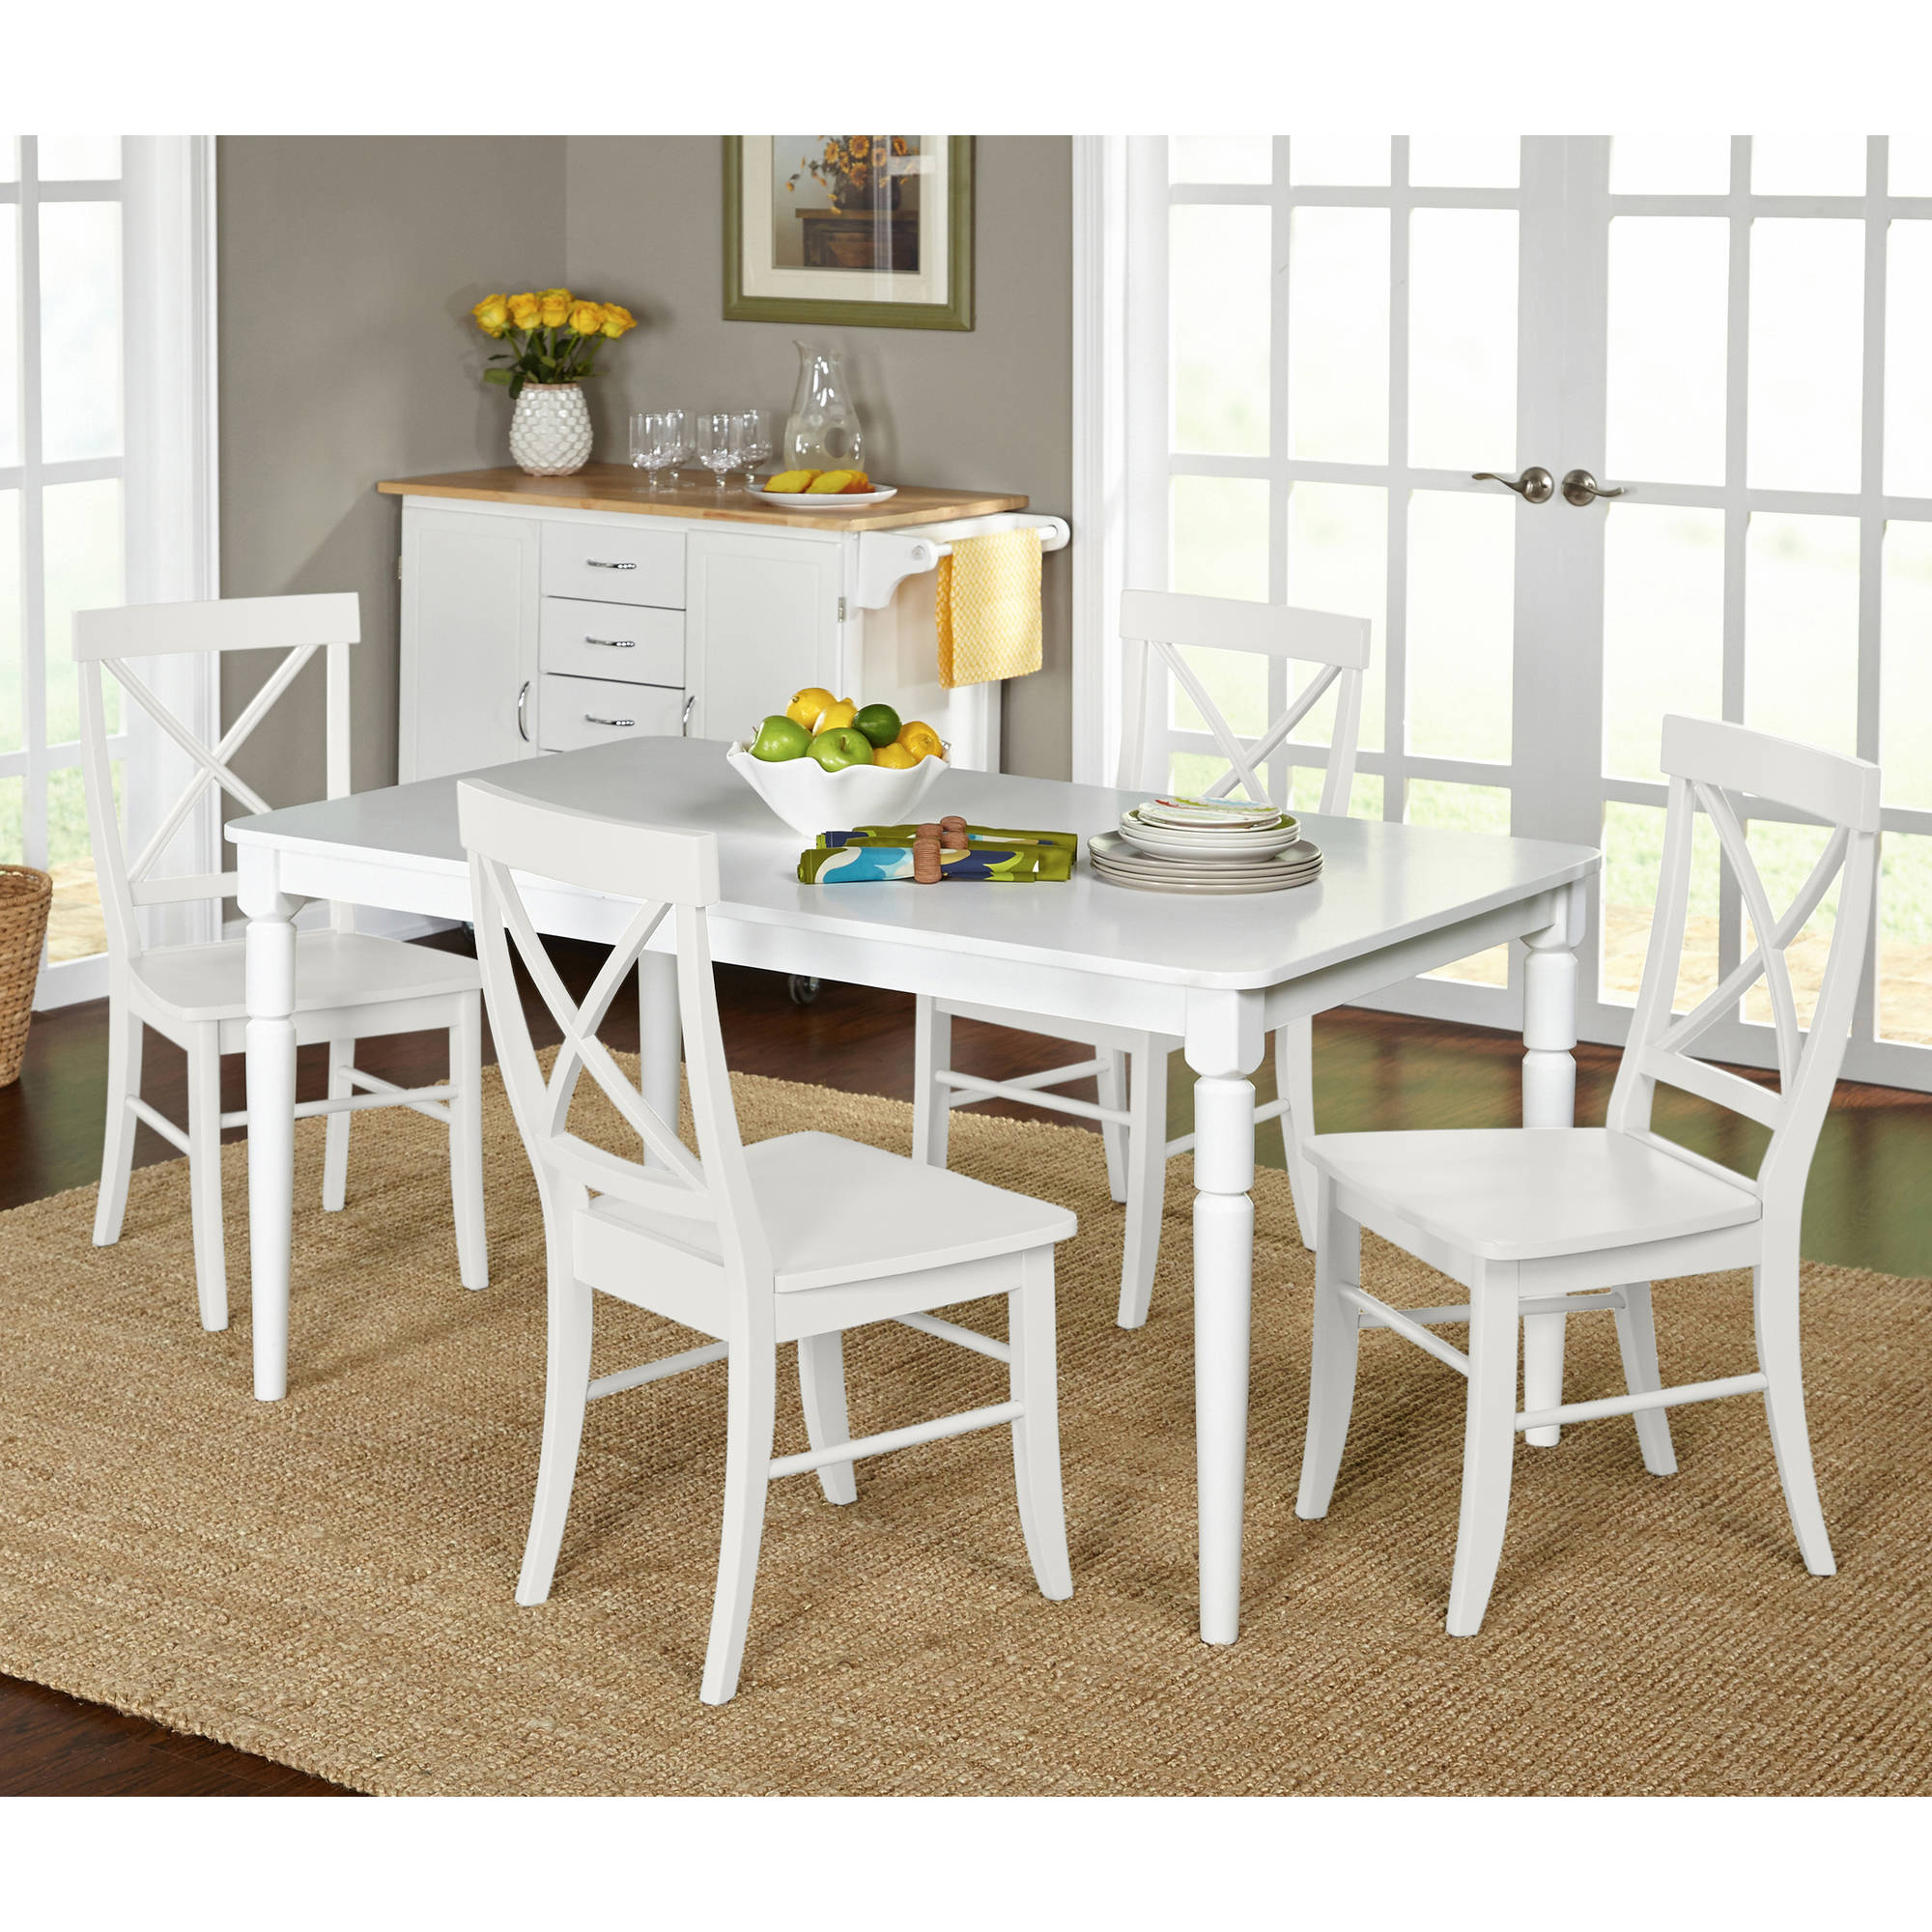 Albury 5-Piece Cross Back Dining Set, Multiple Colors